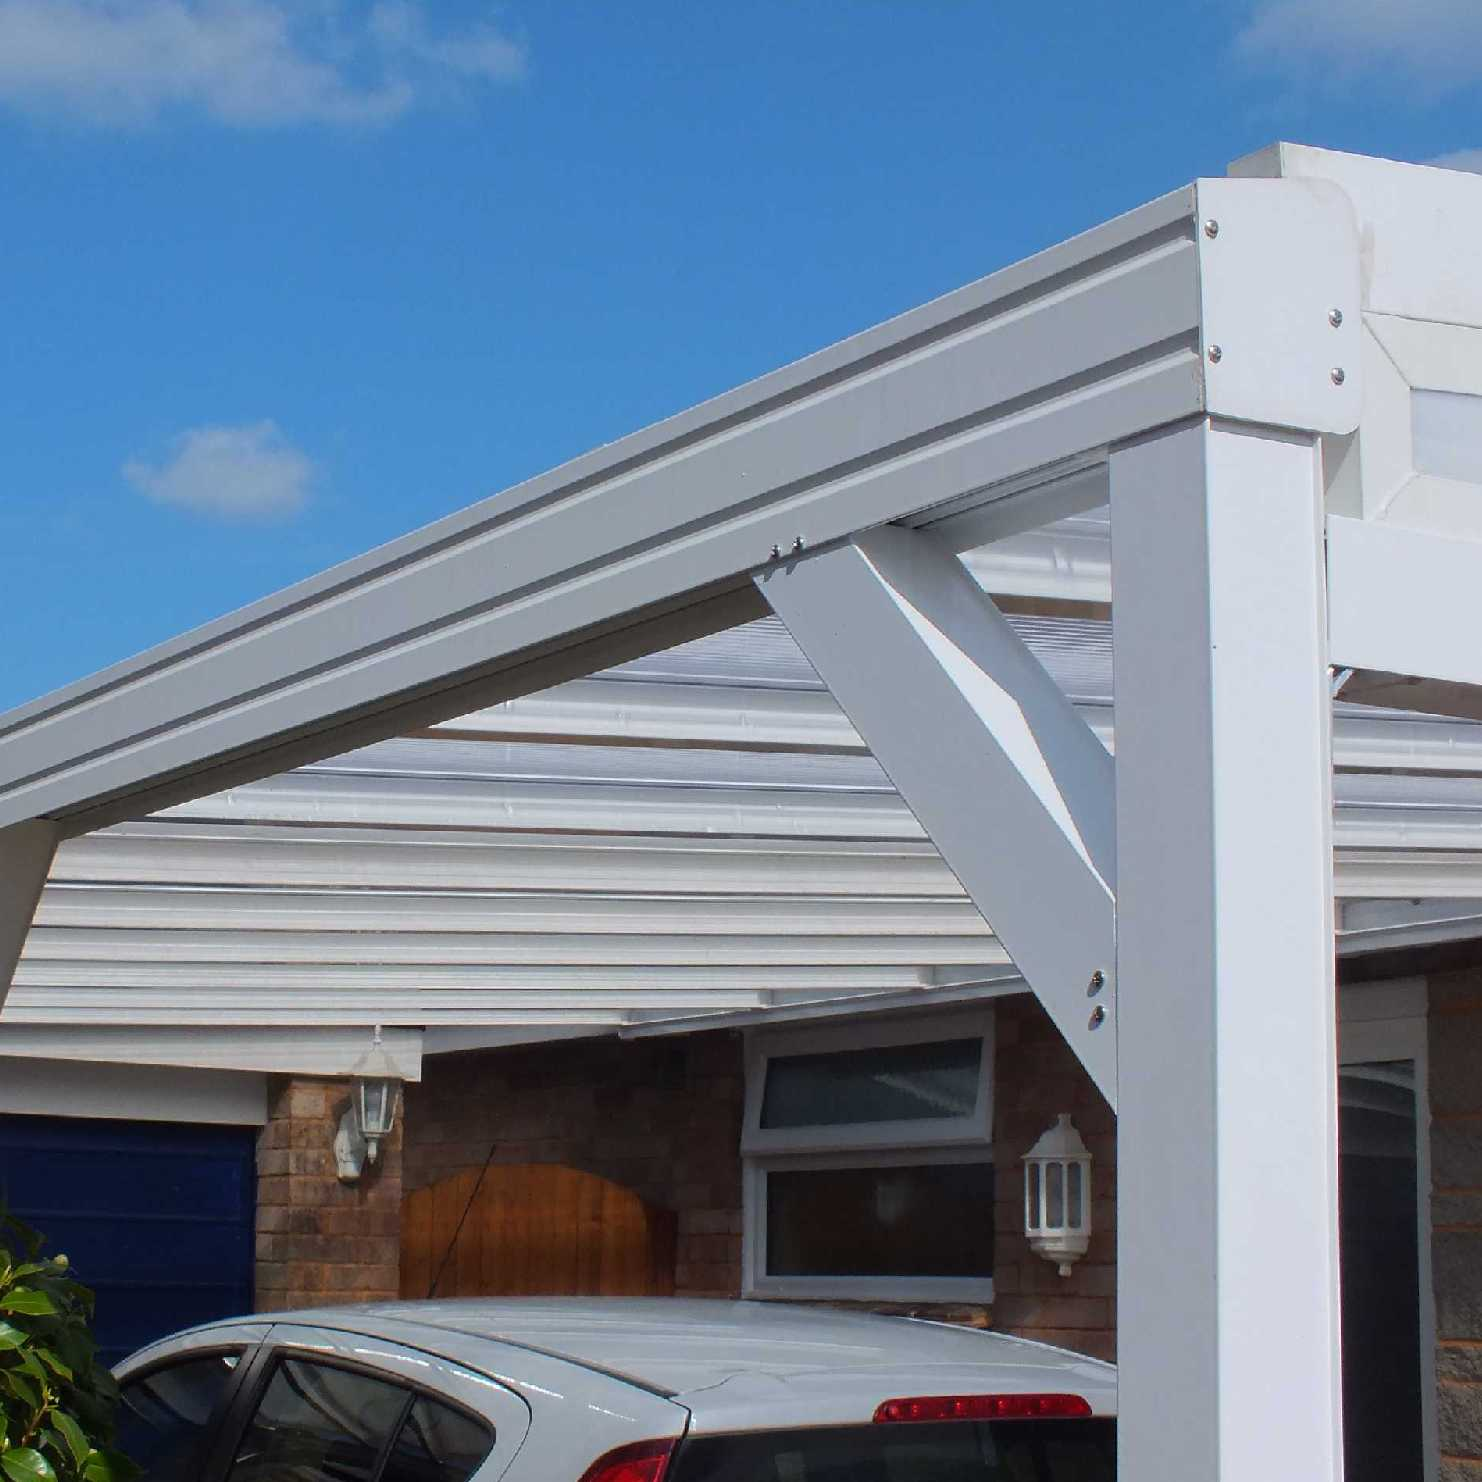 Great deals on Omega Smart Lean-To Canopy with 16mm Polycarbonate Glazing - 6.0m (W) x 1.5m (P), (3) Supporting Posts